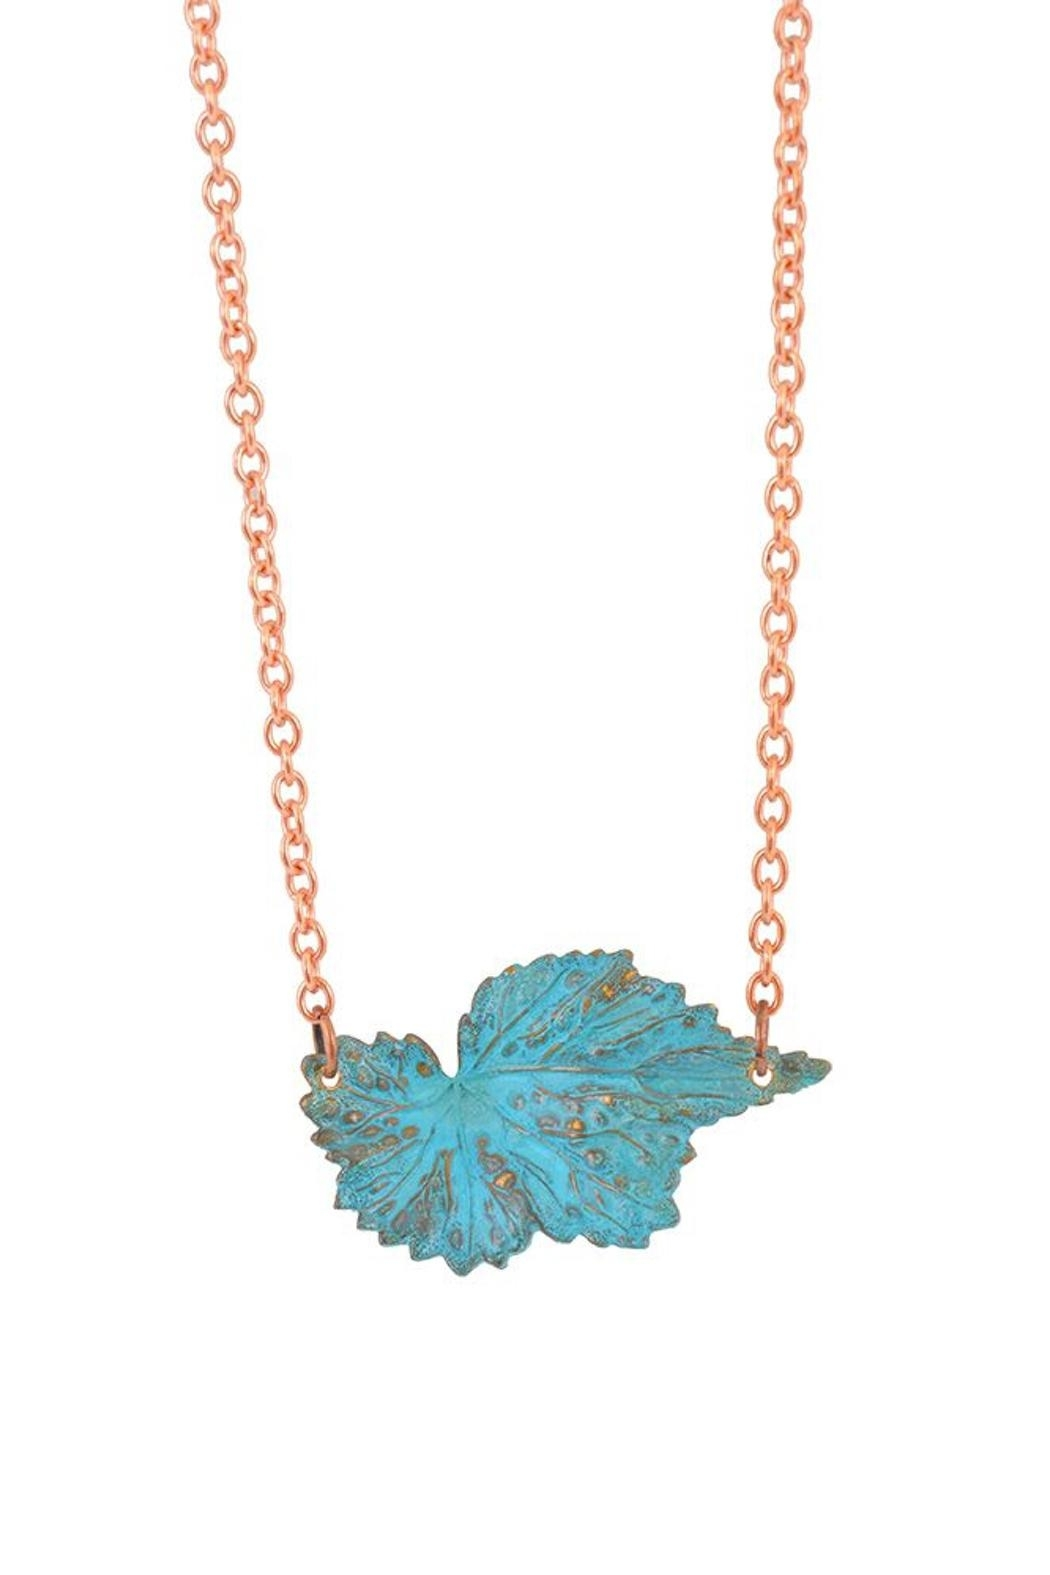 We Dream In Colour Begonia Hand Painted Necklace - Main Image